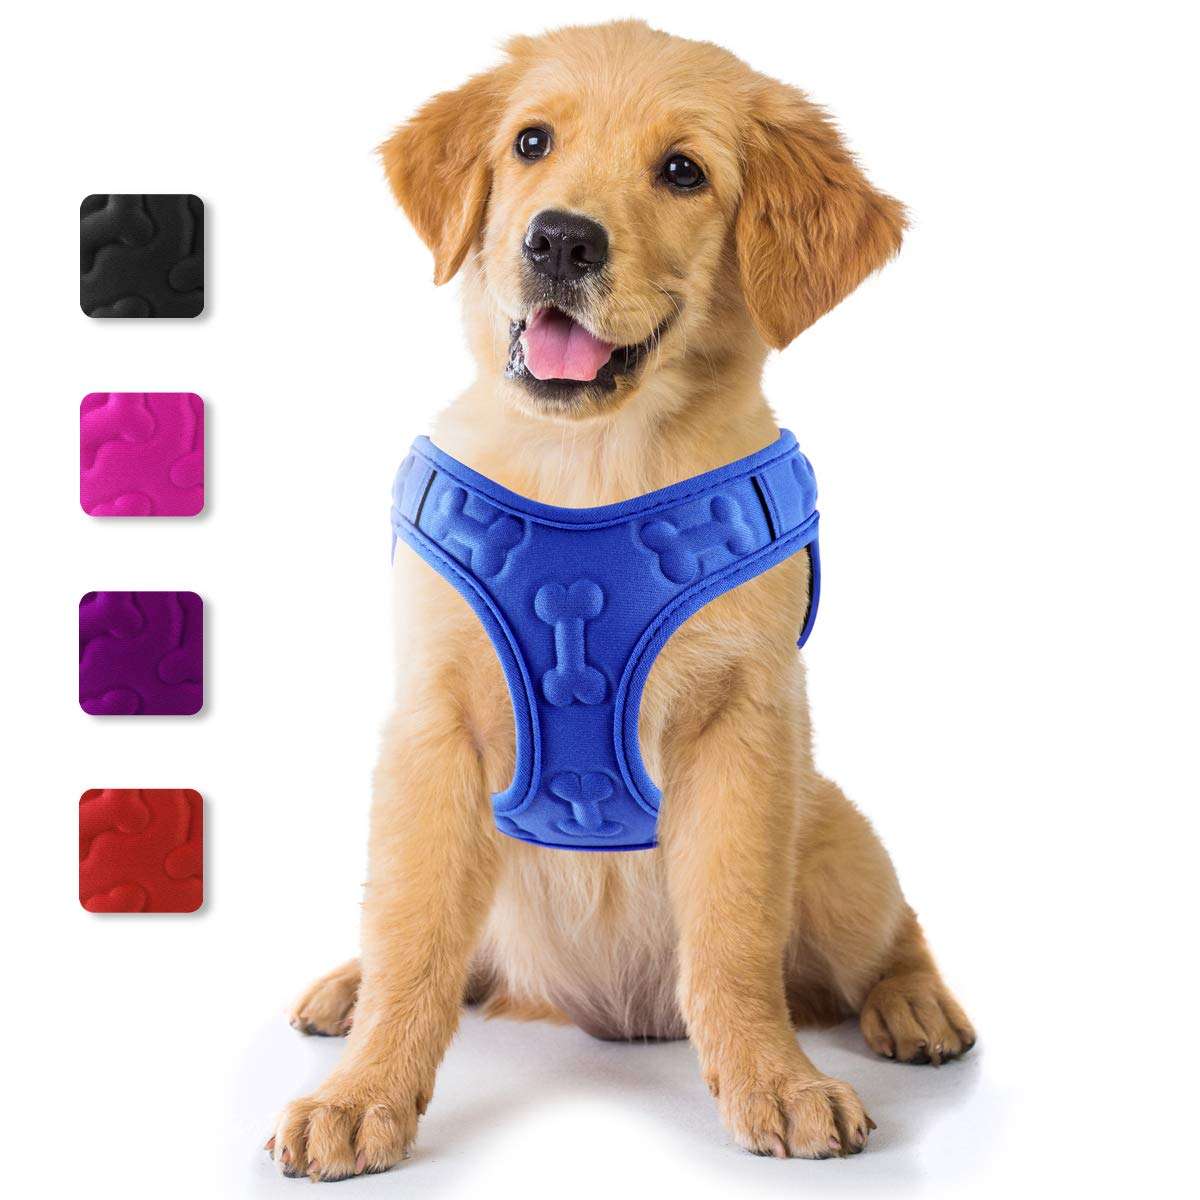 Metric USA ● Lightweight Airy No Pull Small Dog Harness Vest ● Easy to Put on /& Take Off ● Soft Padded Interior /& Exterior Puppy Harness ● Ensures Your Dog is Cool /& Comfortable X-Small, Black